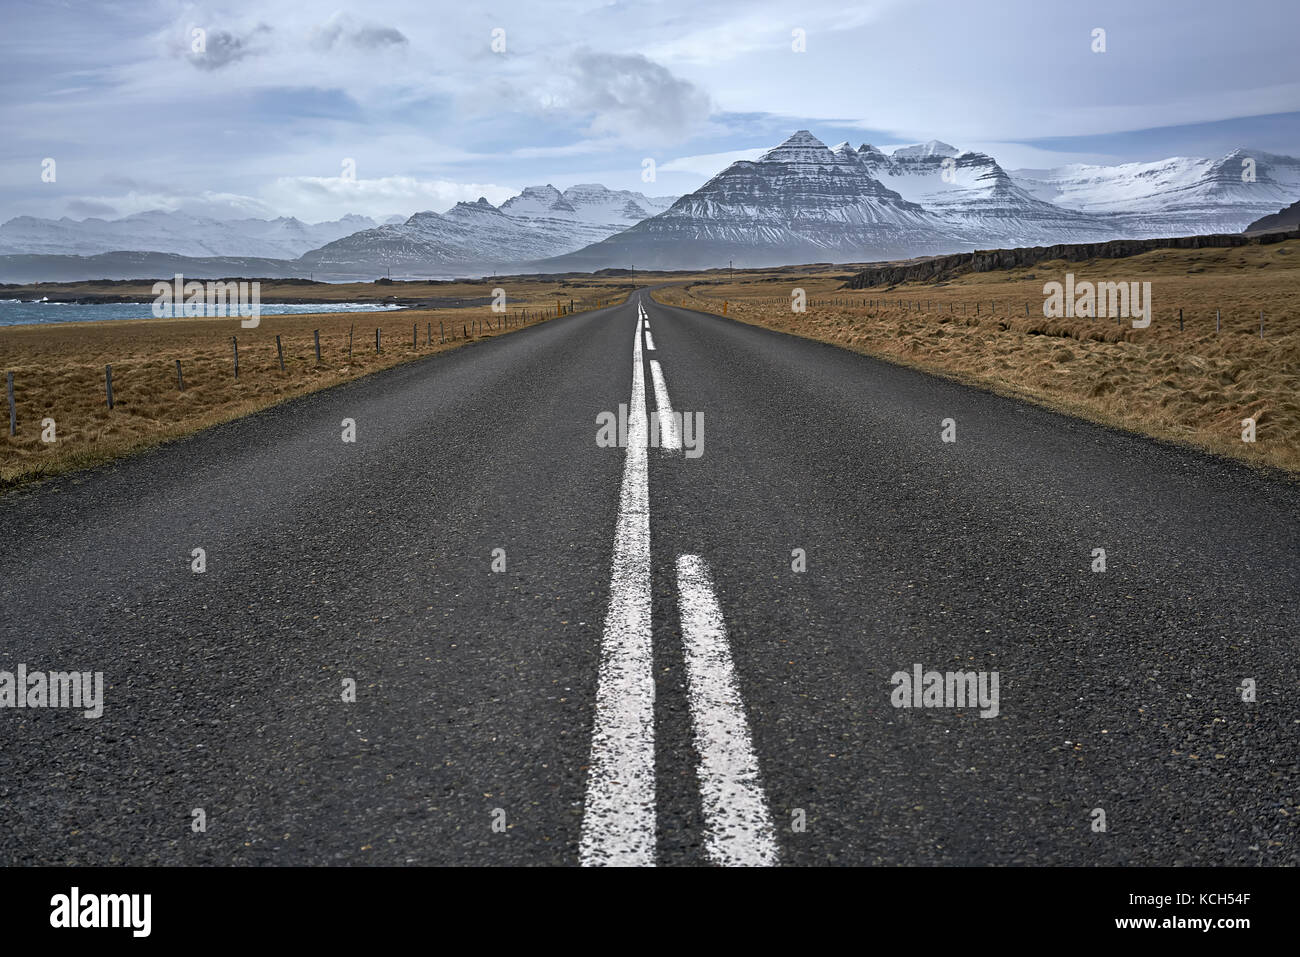 Route de banlieue en Islande Photo Stock